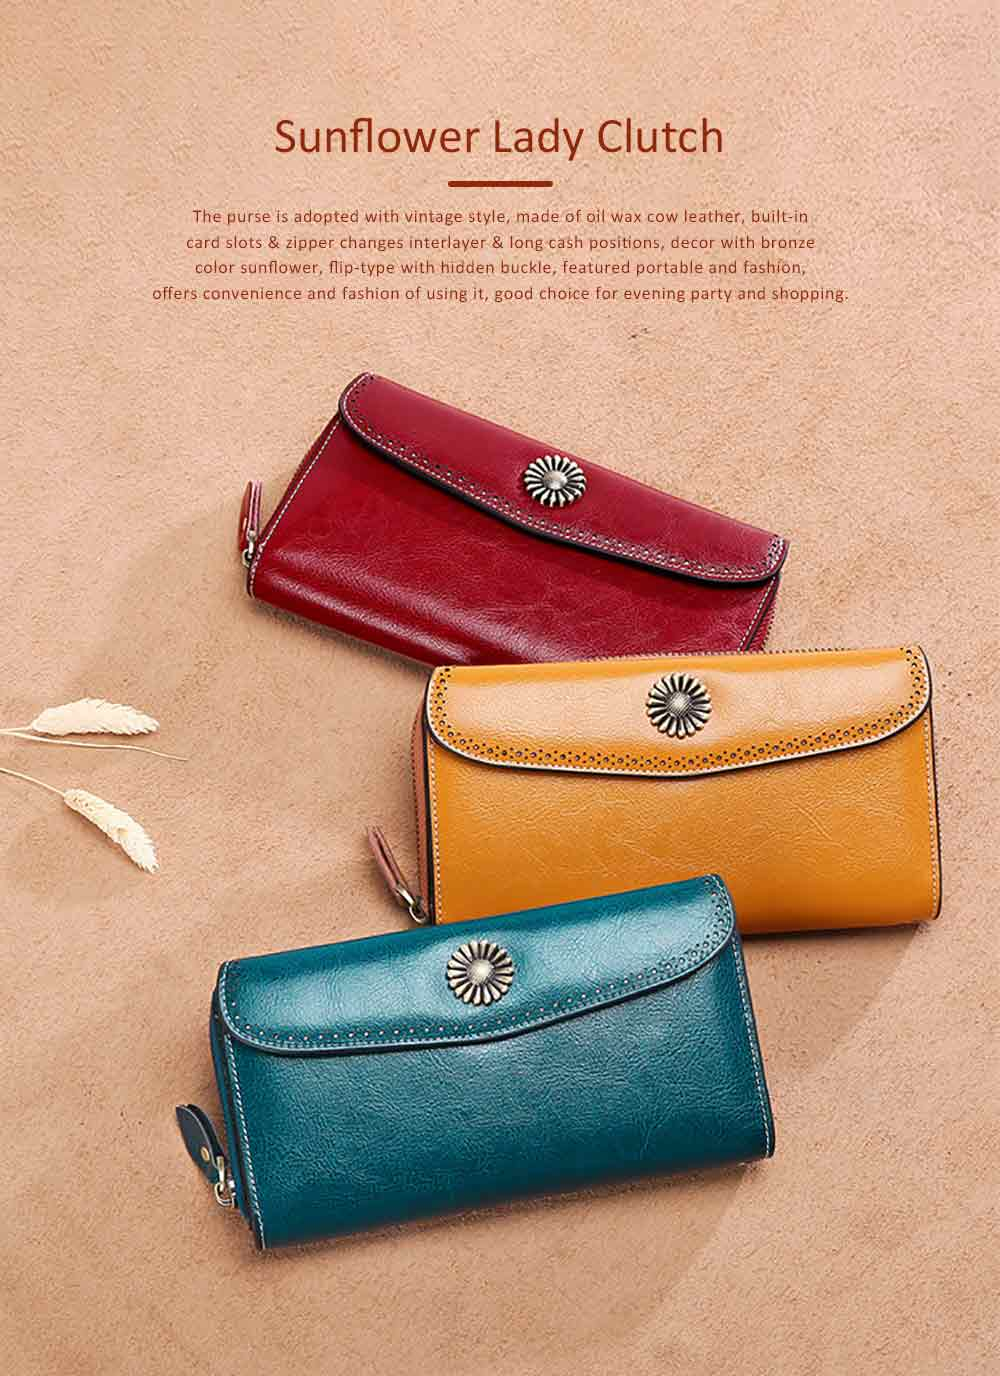 Classical Sunflower Lady Clutch, Genuine Leather Flip-type Purse with Card Holder, Mini Purse Long Clutch Bag Women Accessories 0